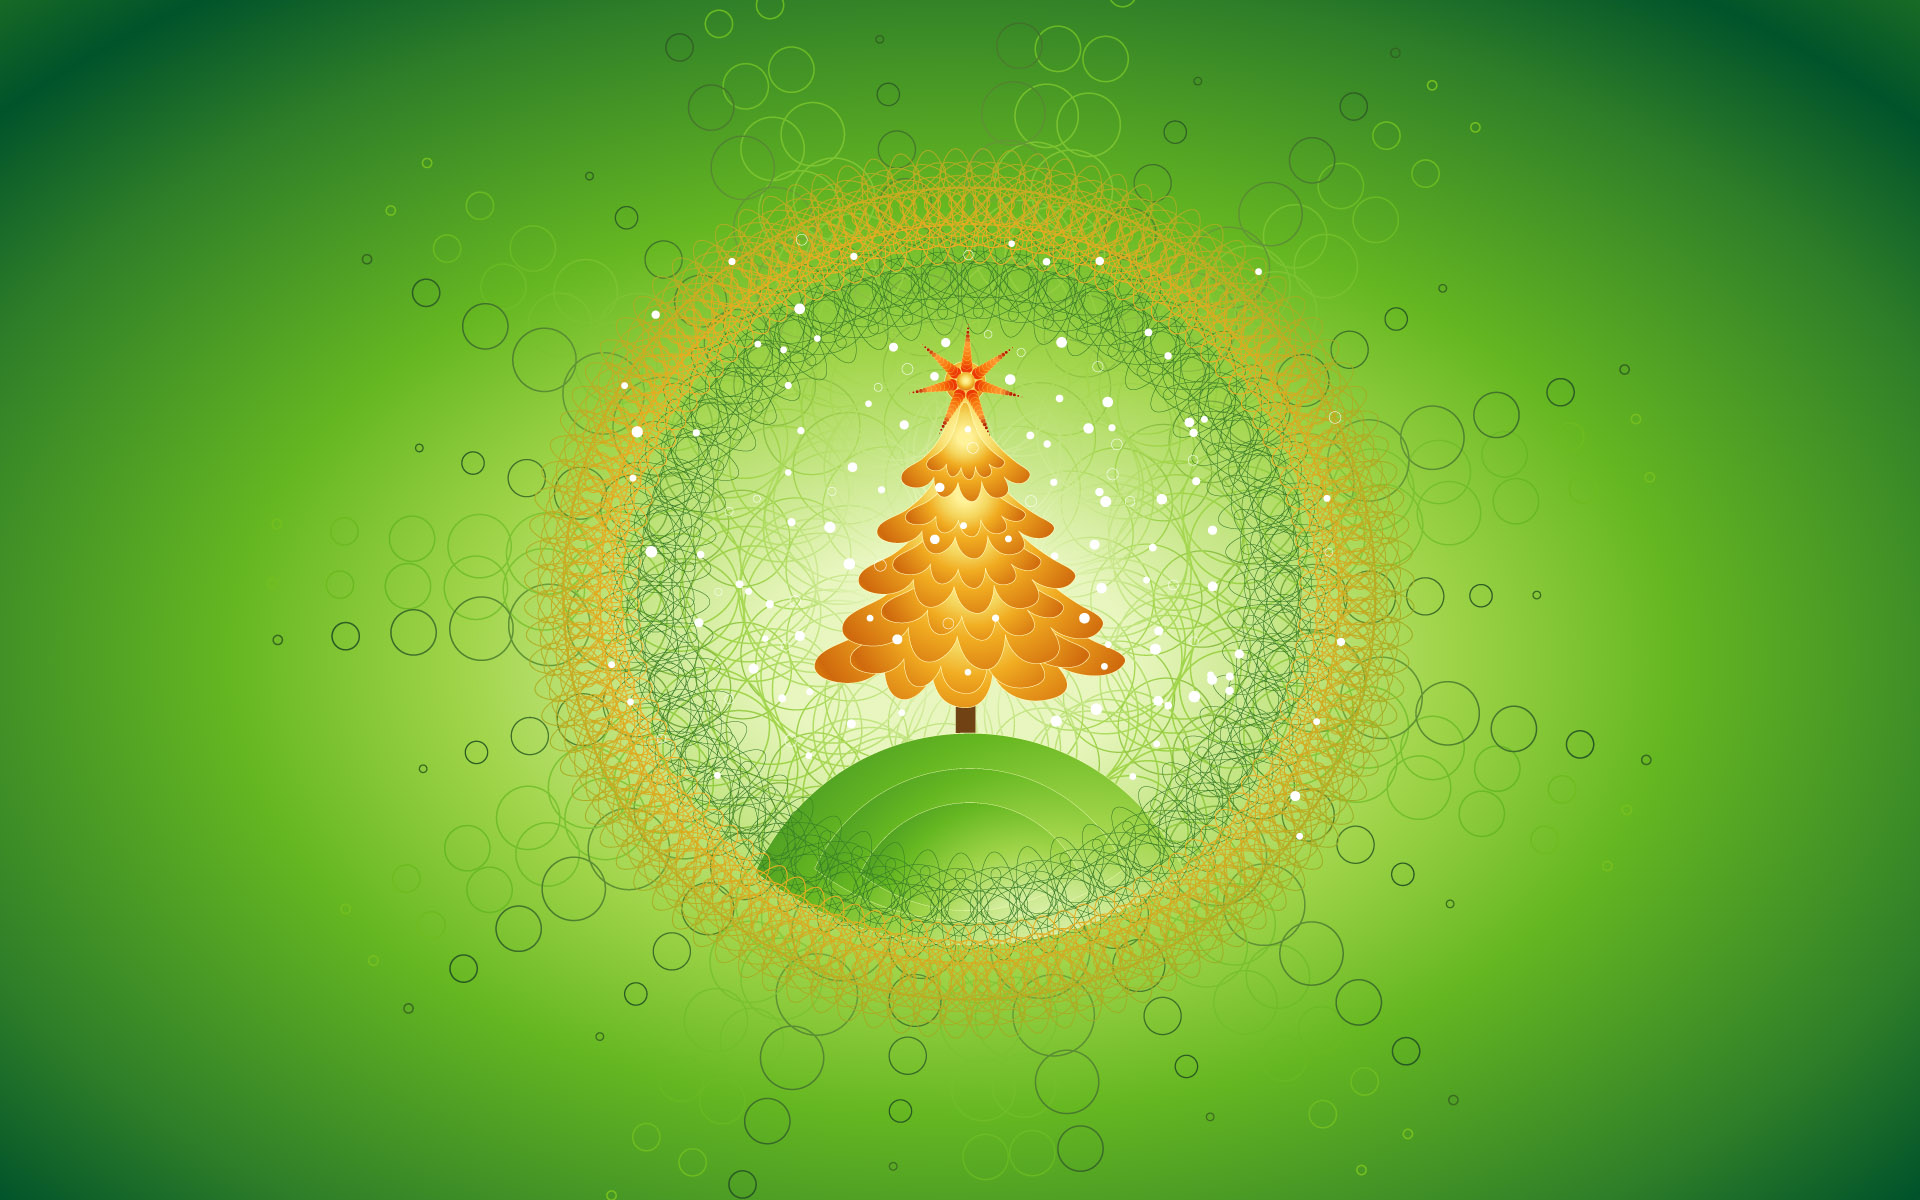 Beautiful Christmas Tree Design 295.34 Kb